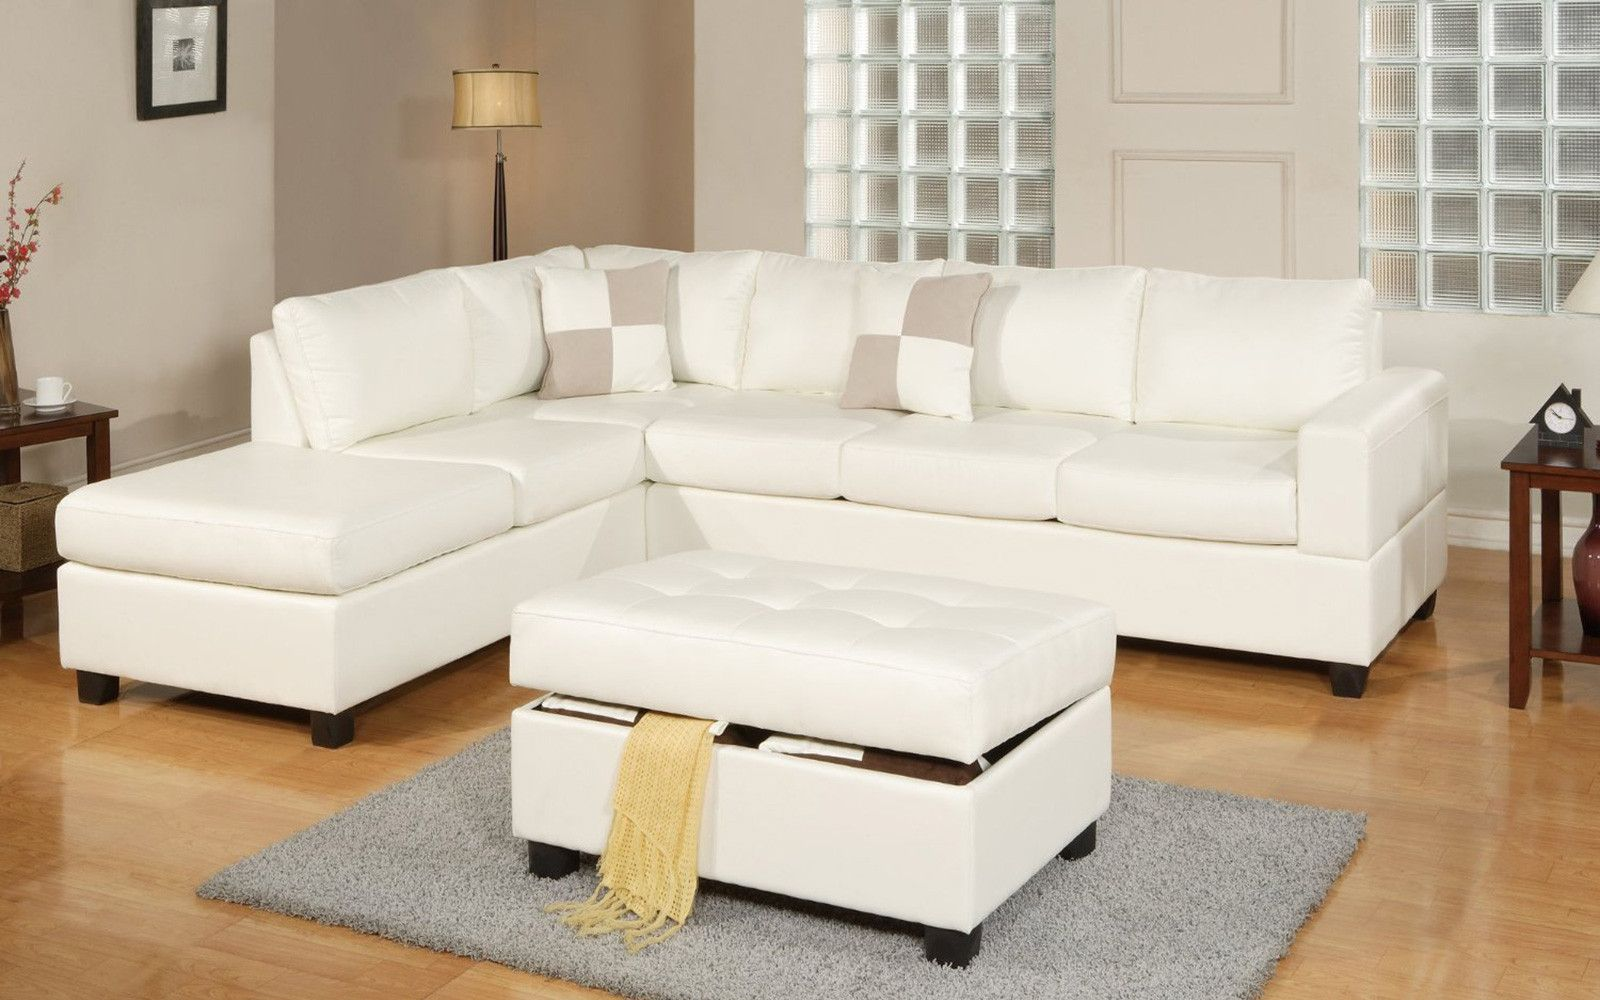 Home Leather Sectional Sofas Leather Sectional Sofa White Sectional